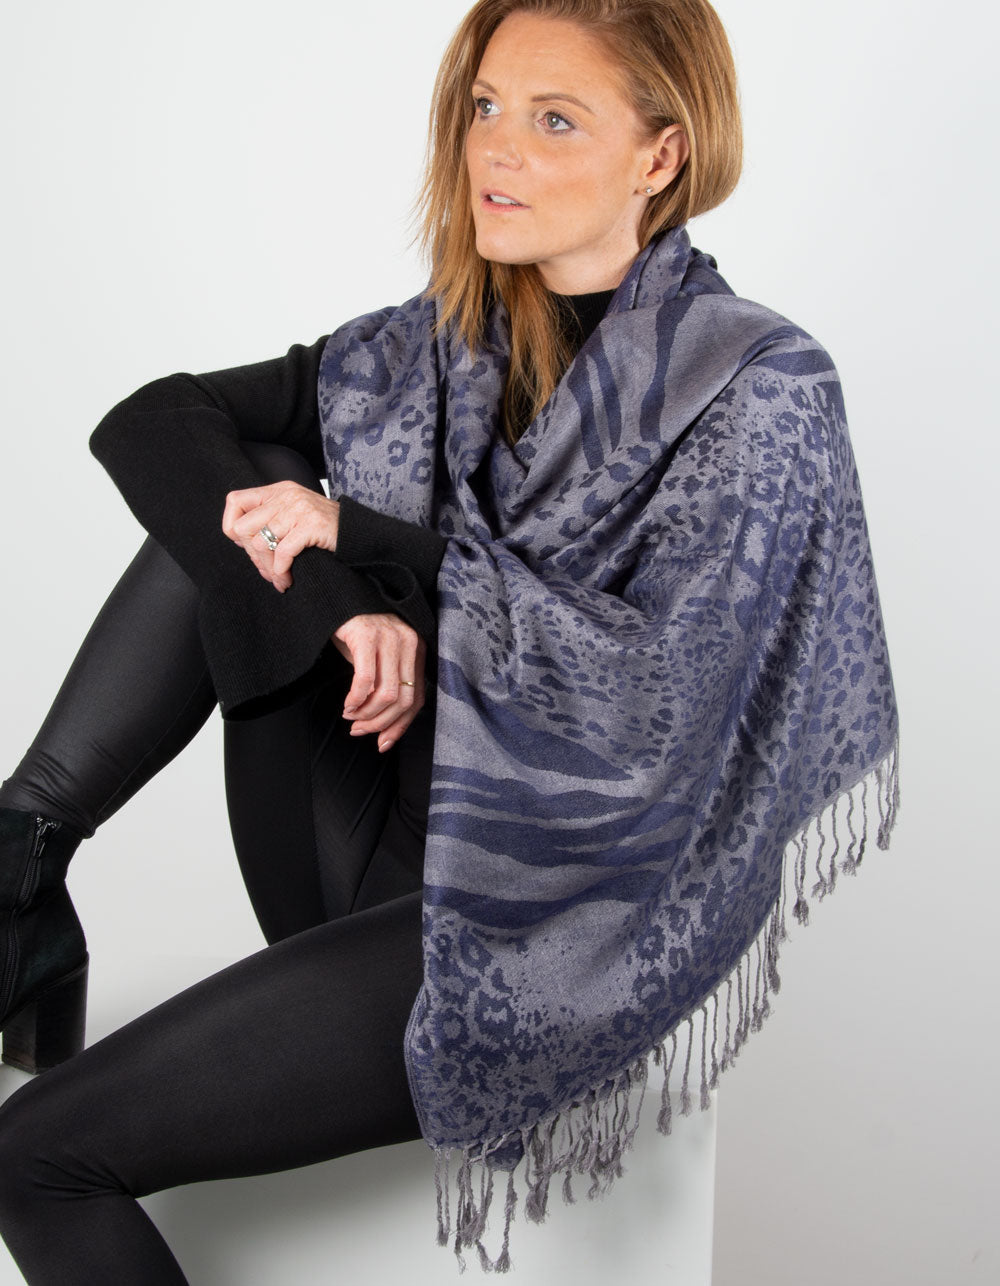 an image showing a blue and silver patterned pashmina